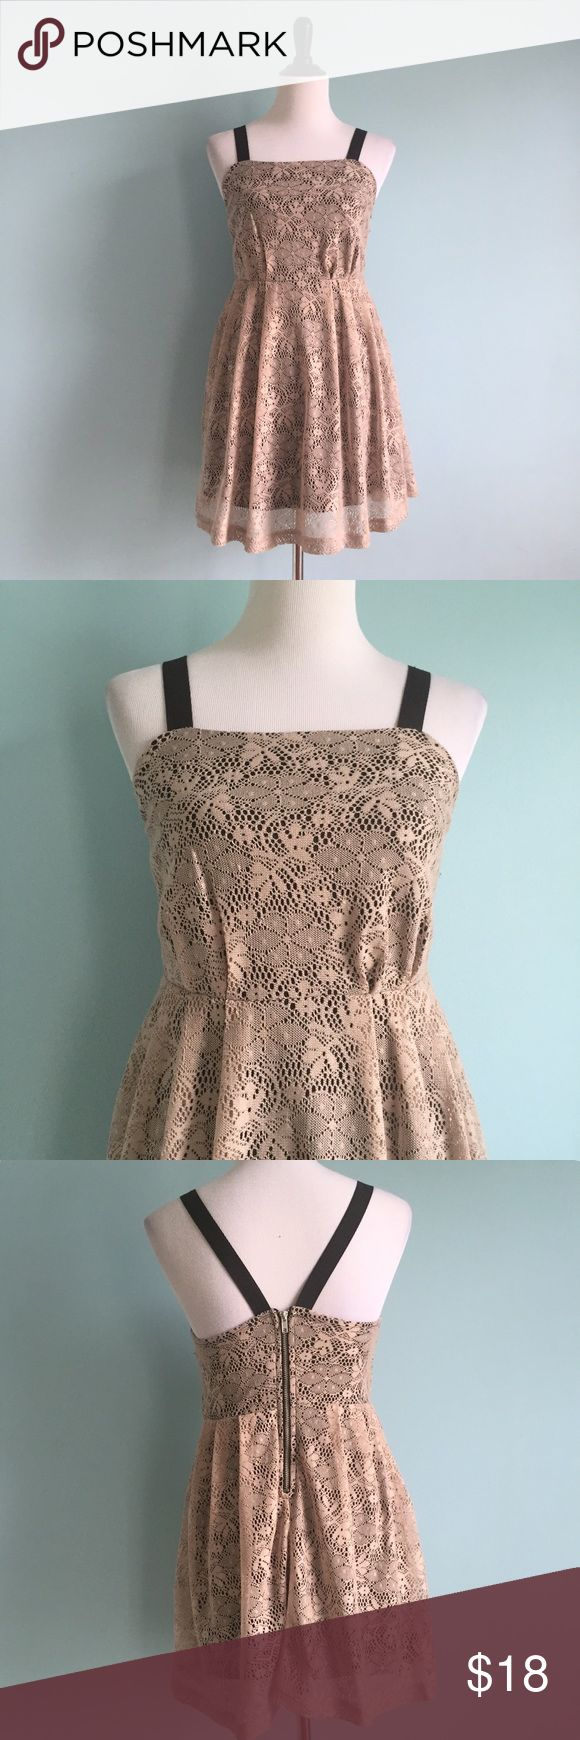 Tan & Black Lace Dress Cute tan lace dress with black lining underneath. Elastic straps that converge in the back. Pleating on skirt with fit & flare shape. Size 3 by Ruby Rox. Ruby Rox Dresses